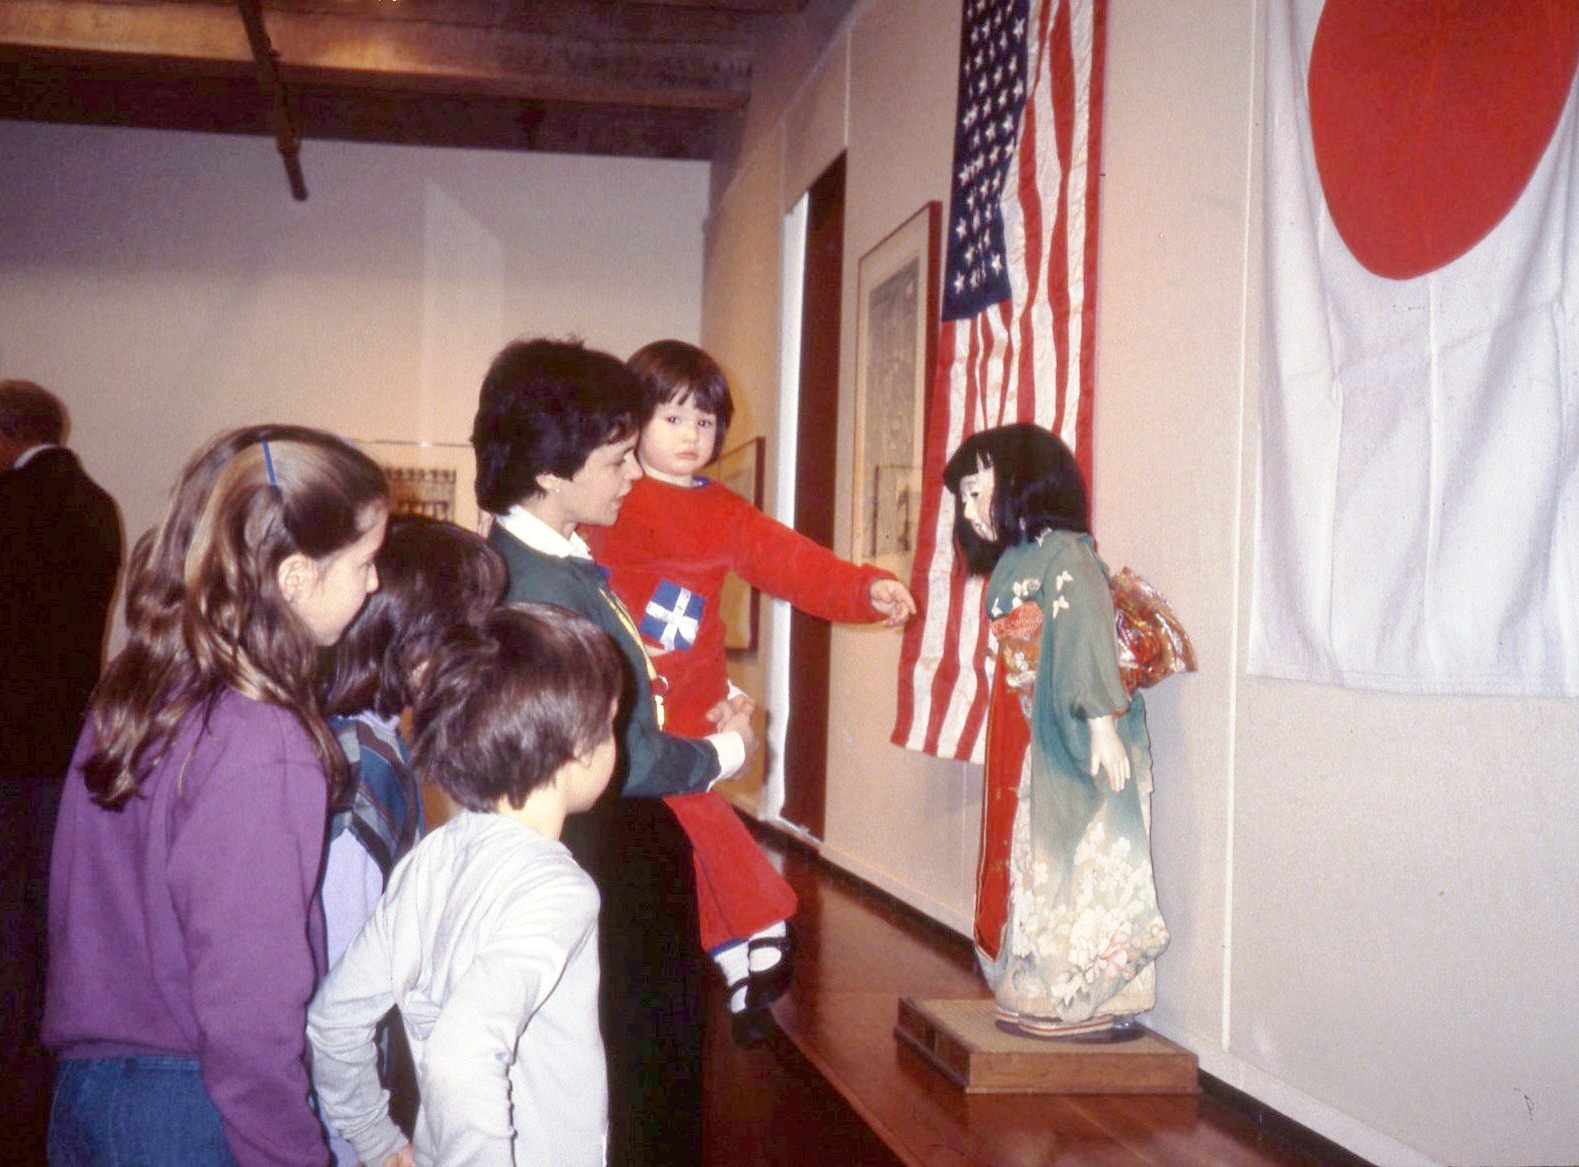 1984.March_.Miss K goodbye Farewell Exhibit showing